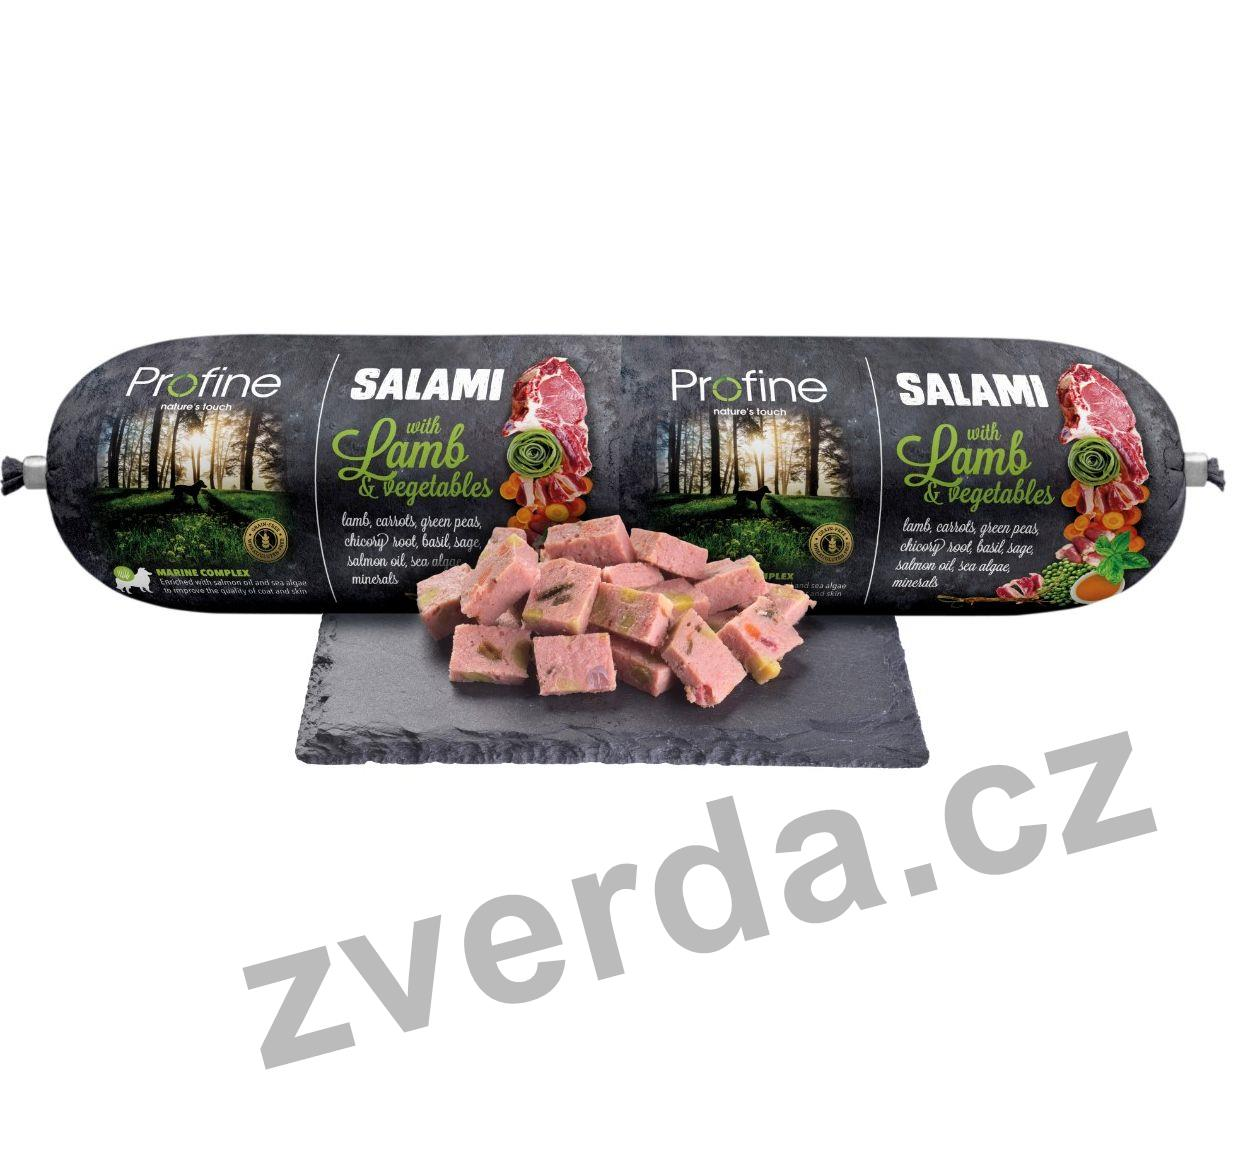 Profine Salami Lamb & Vegetables 800g